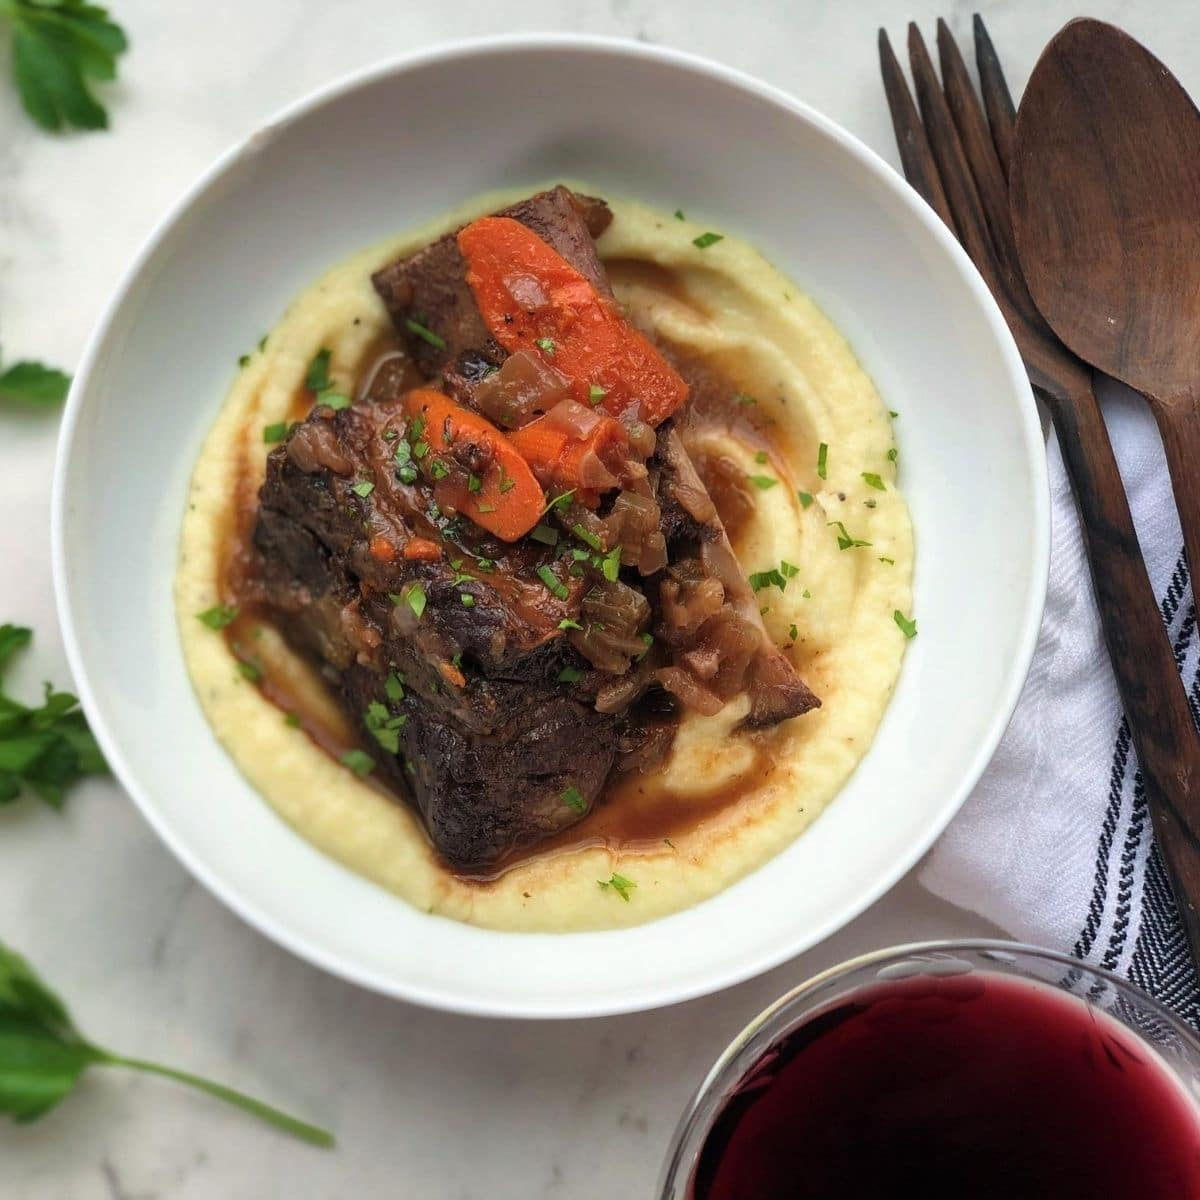 Braised short rib on puree in white bowl